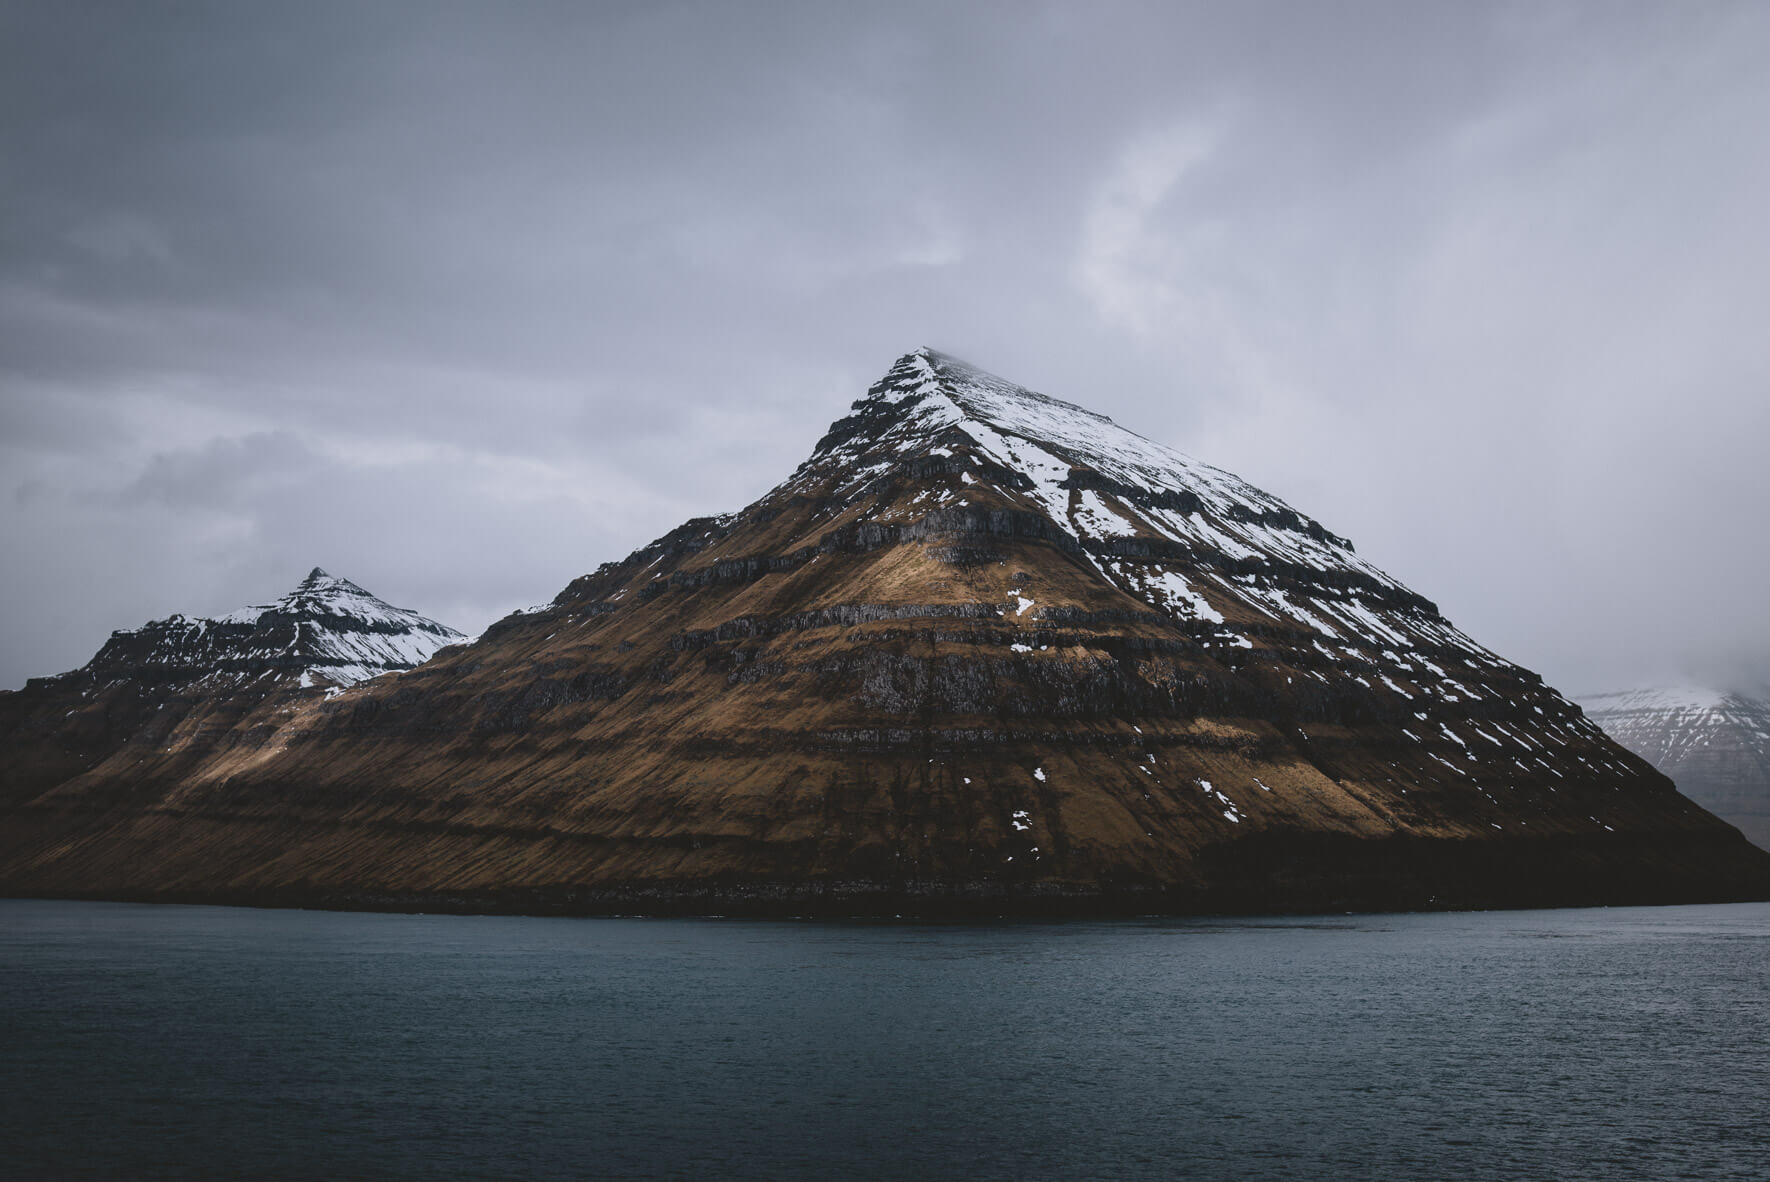 Landscape photography of the Faroe Islands by fine art and commercial photographer Jan Erik Waider